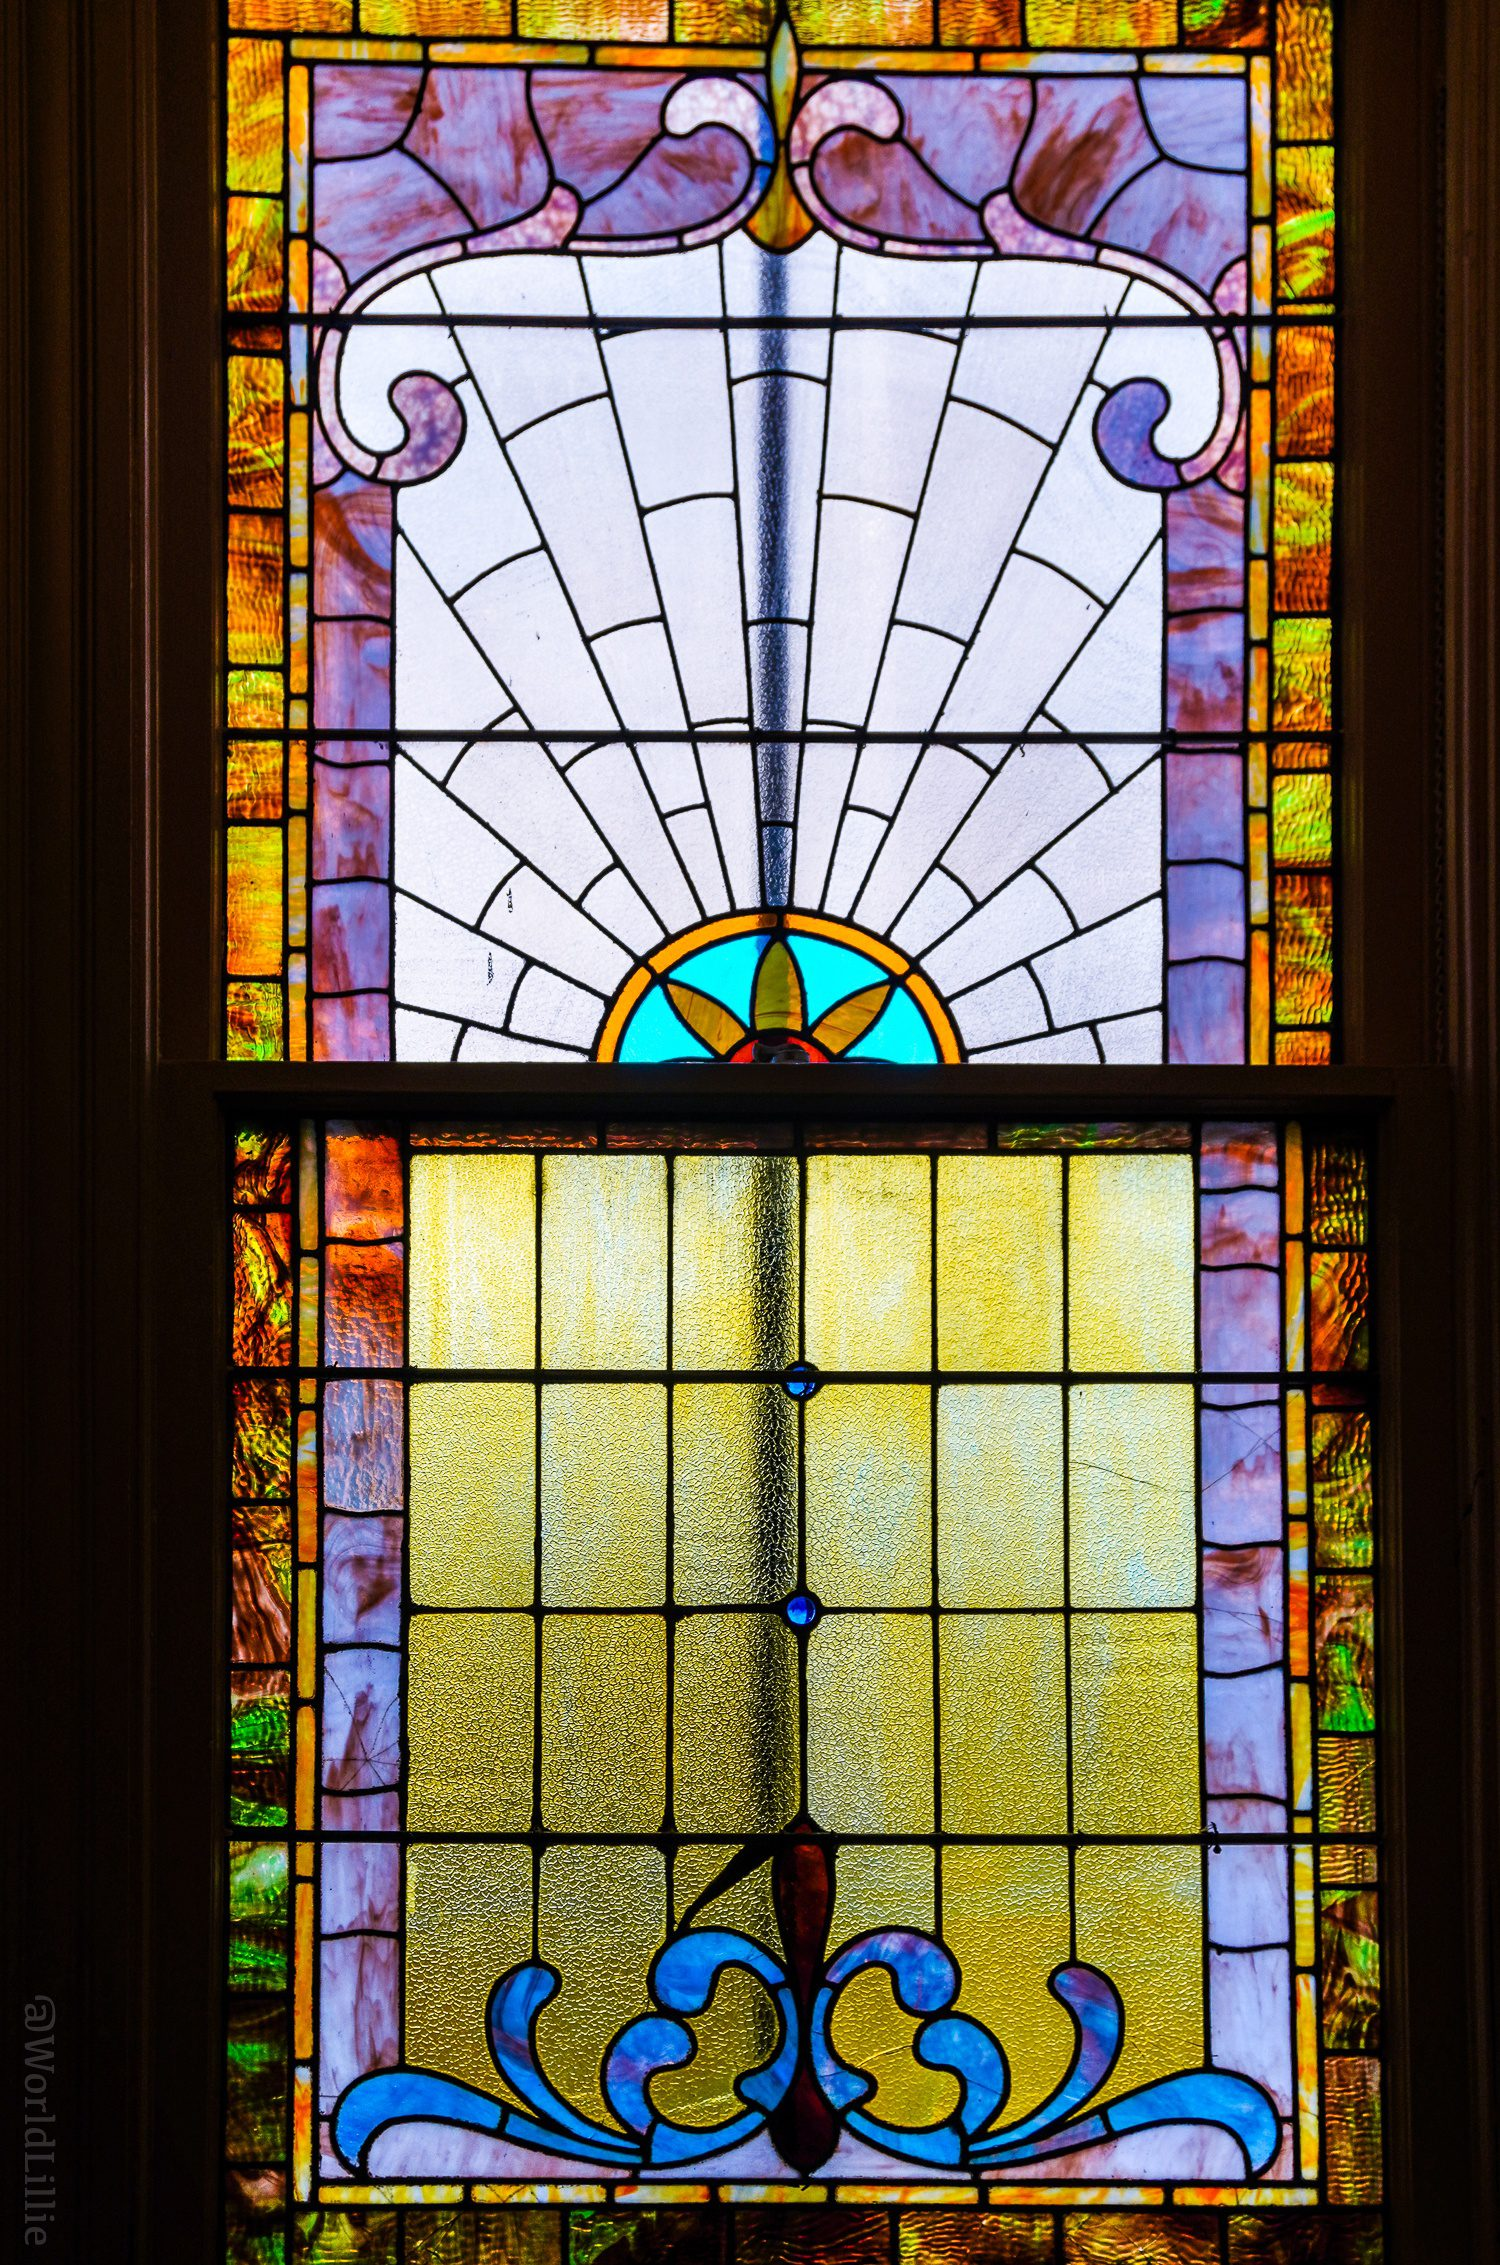 Stained glass is all over Ligonier.